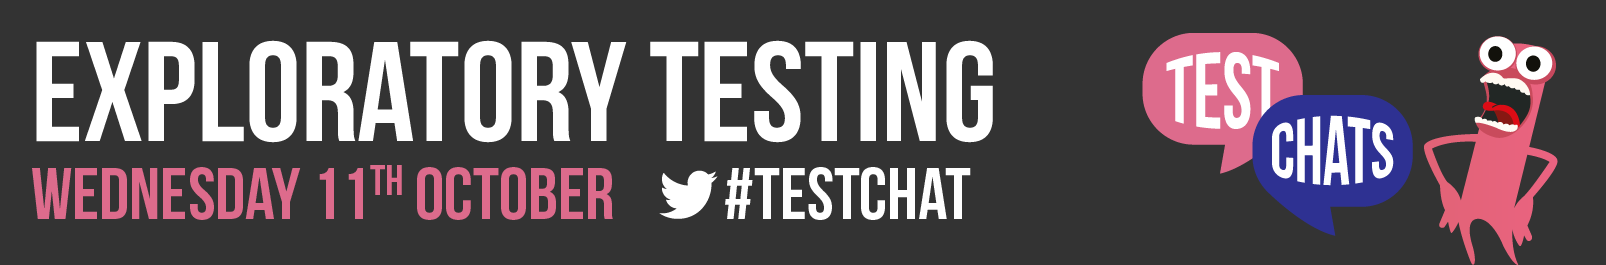 Test chats   exploratory testing banner